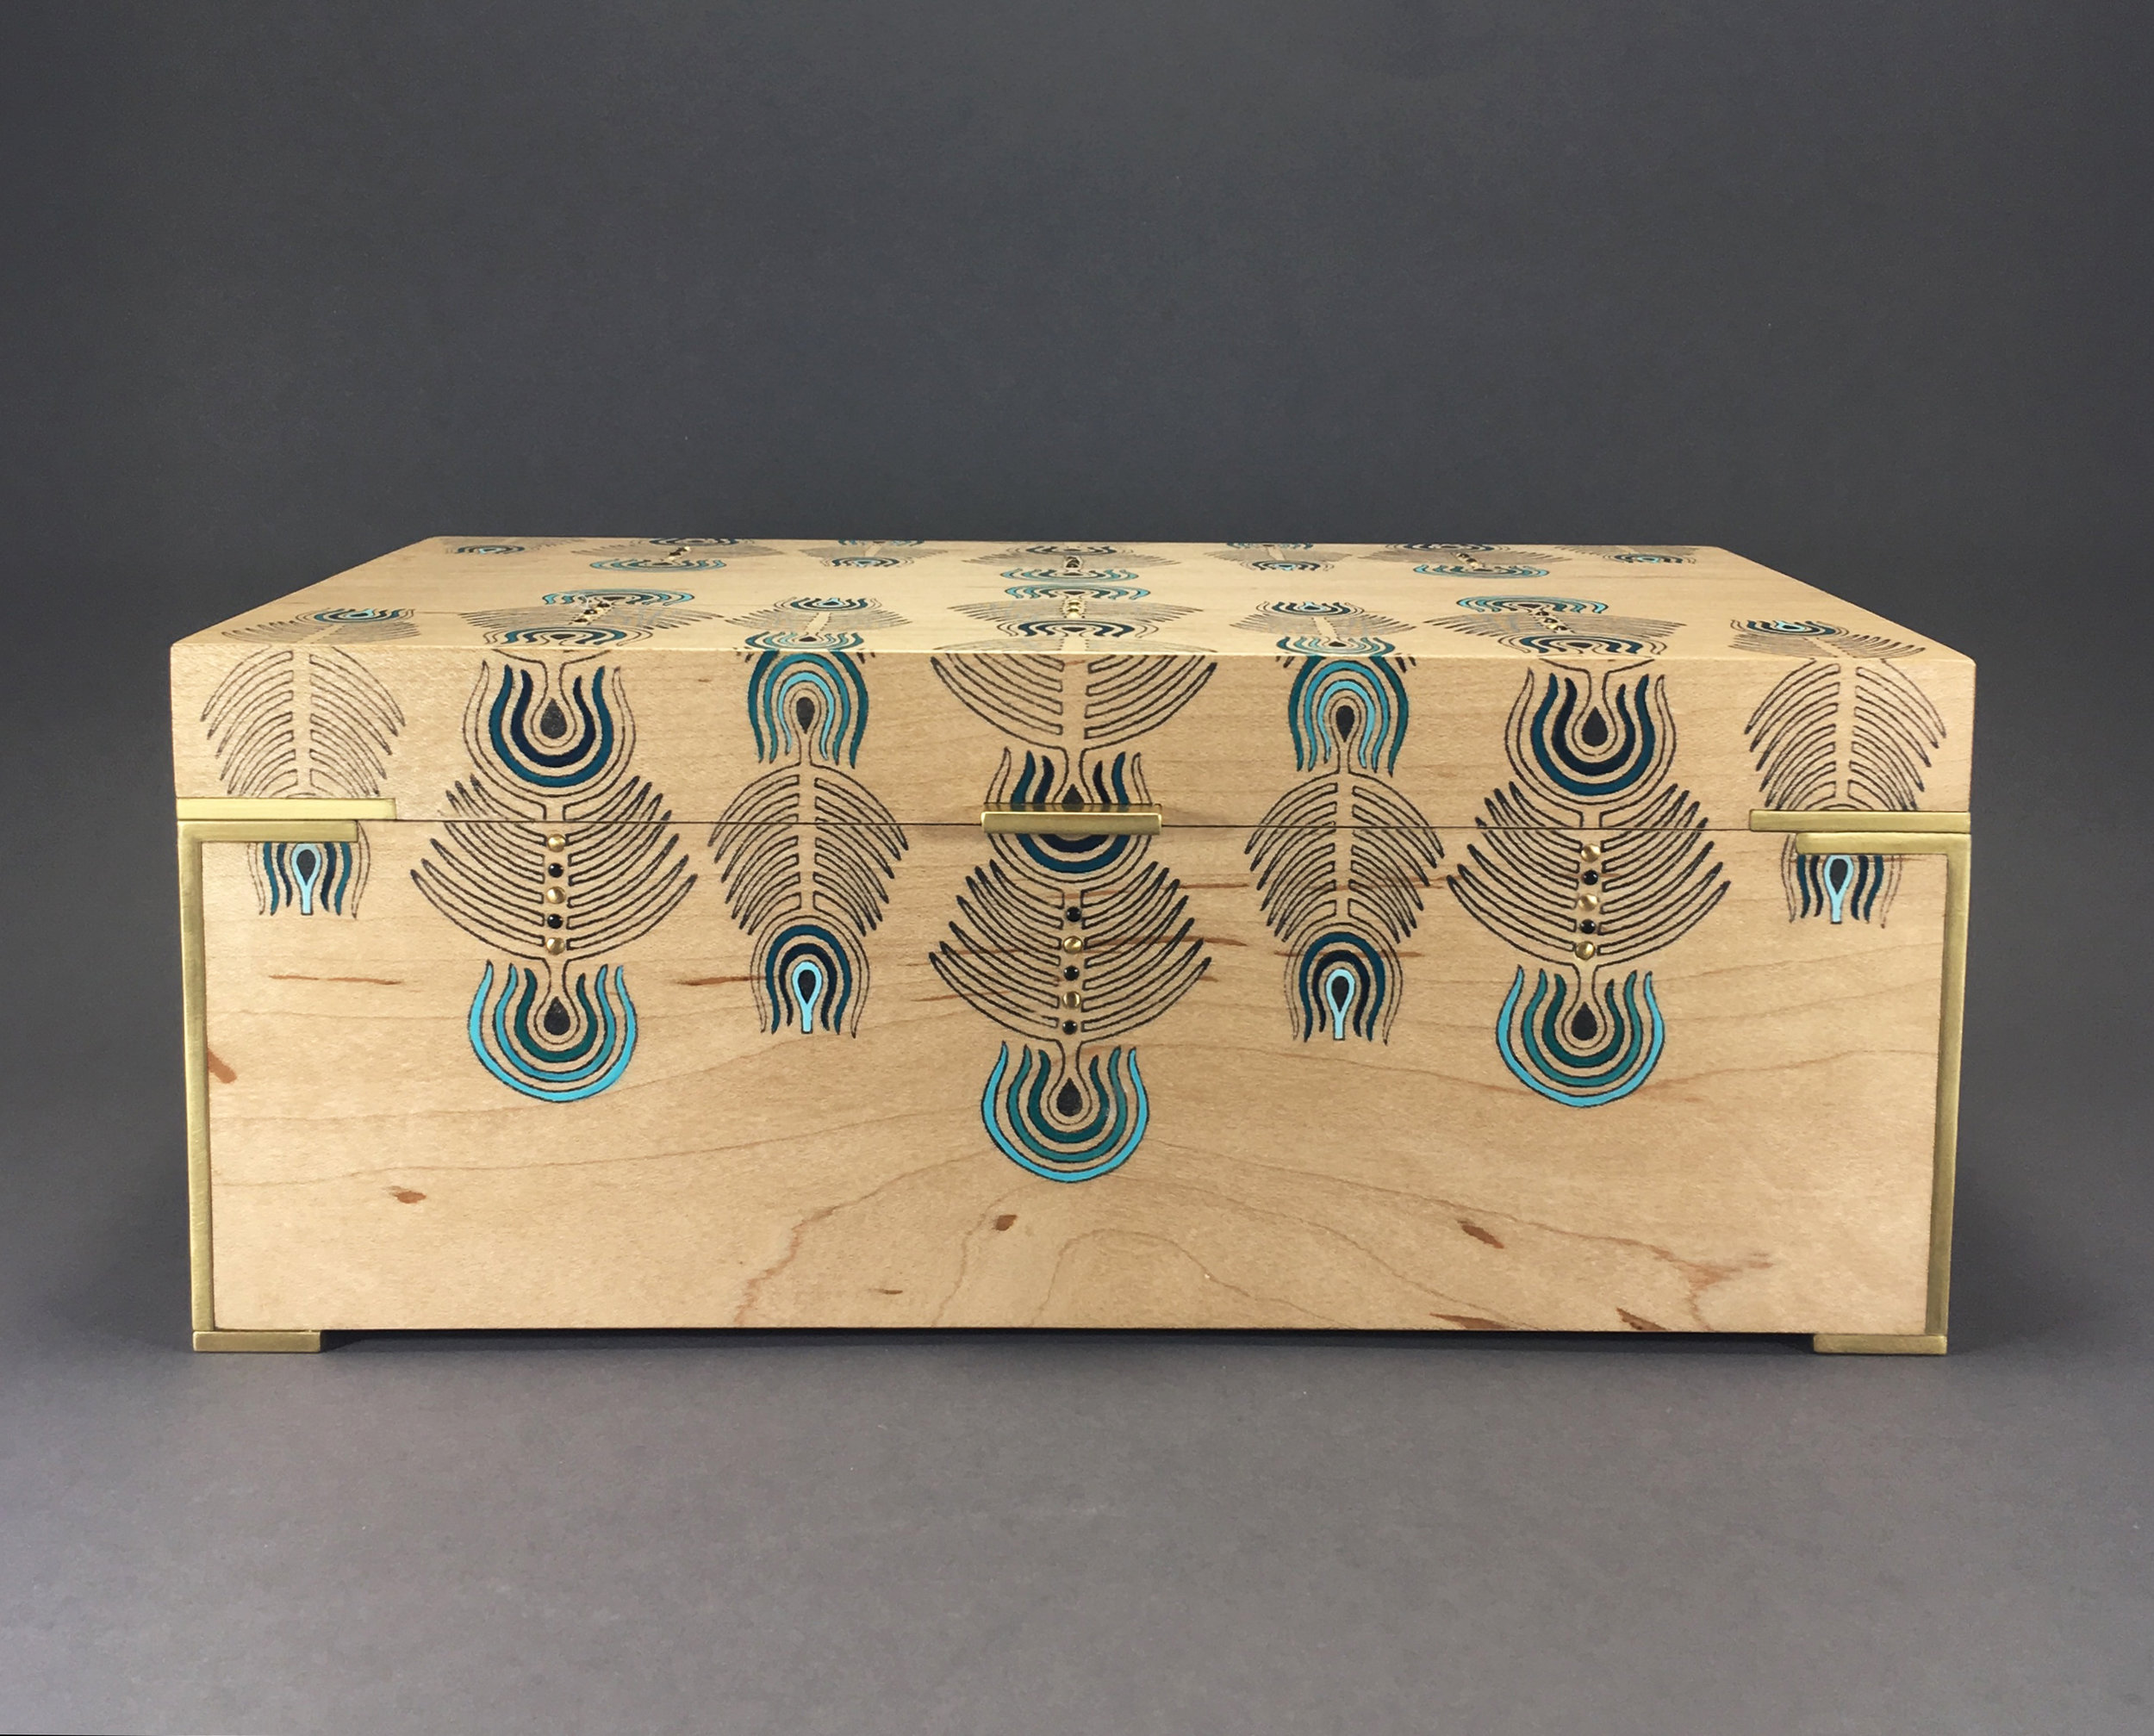 """peacock  box, maple, 10"""" x 6"""" x 4"""", brass and black spinel gemstones, solid brass hinges, lined with navy suede with a removable top tray, $600"""